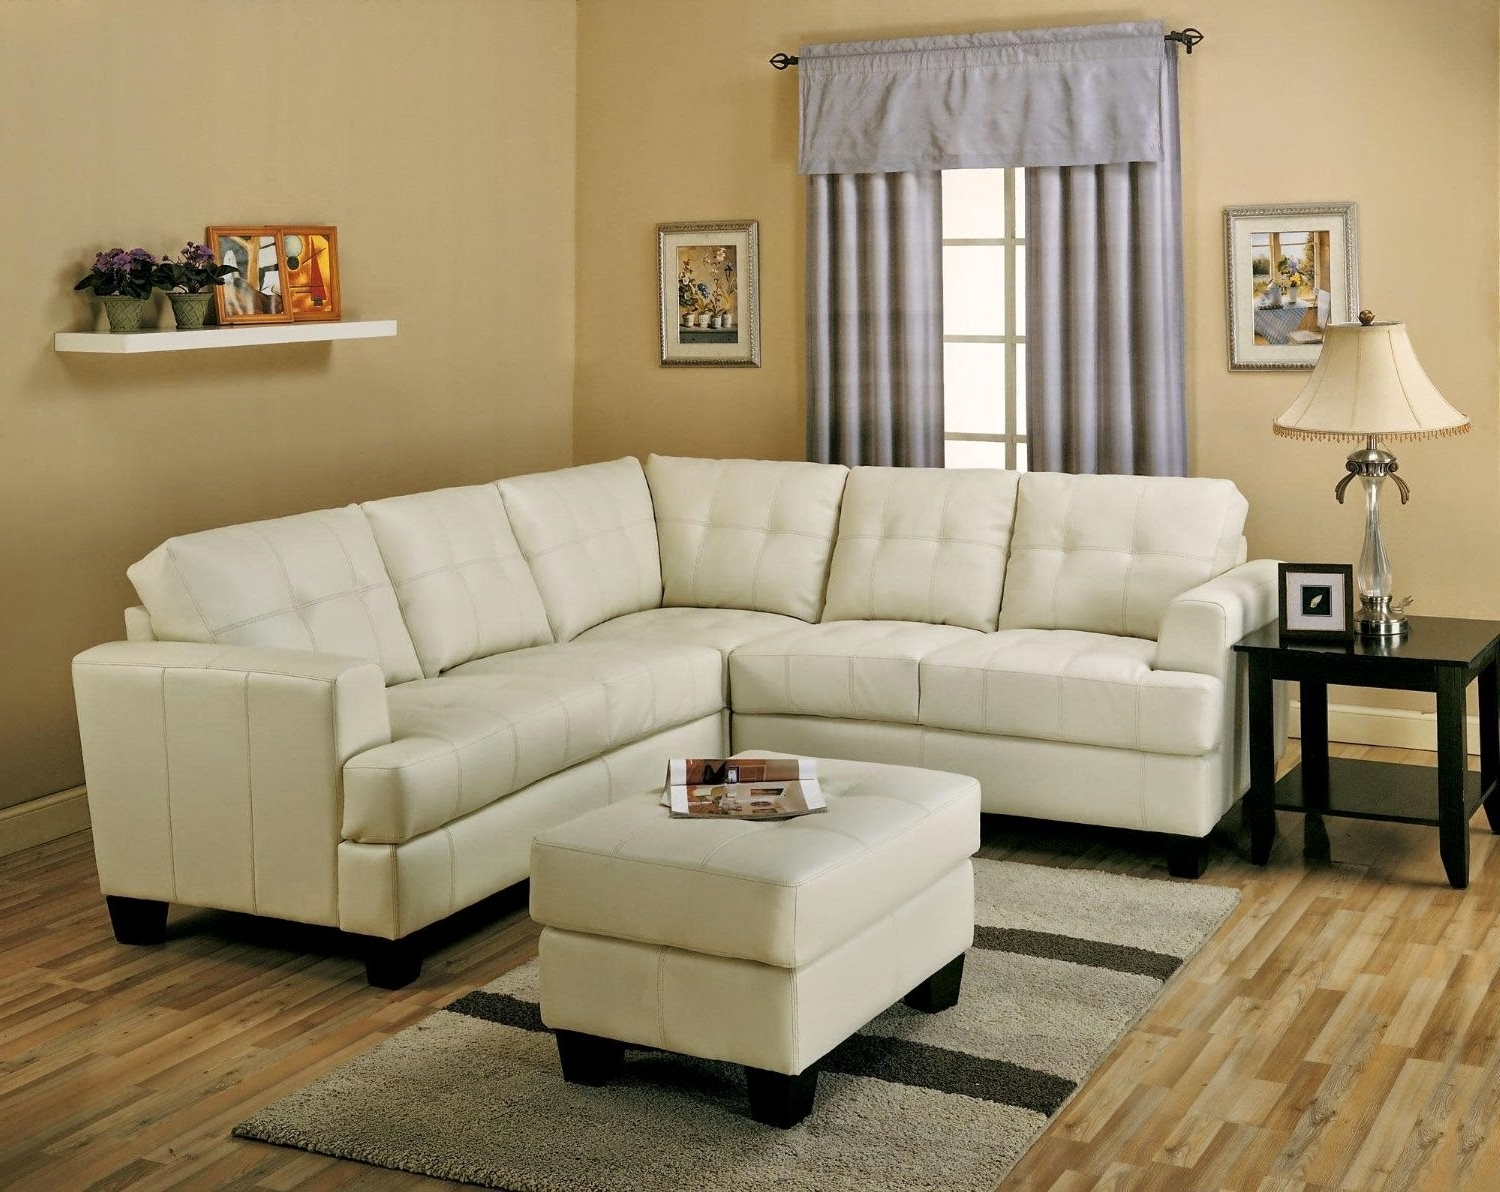 Best And Newest Good Quality Sectional Sofas – Cleanupflorida For Good Quality Sectional Sofas (View 12 of 20)